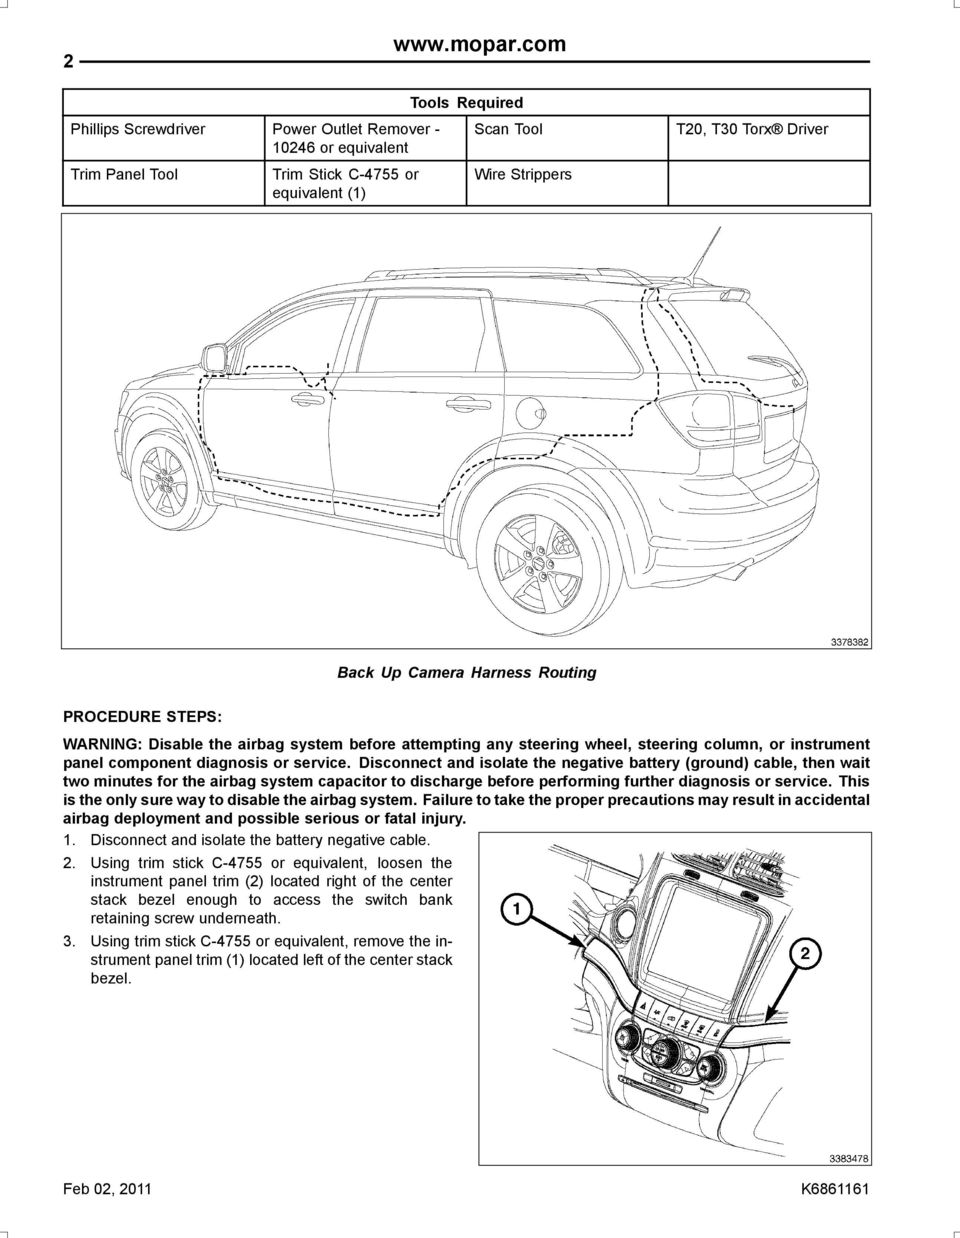 Harness Routing PROCEDURE STEPS: WARNING: Disable the airbag system before attempting any steering wheel, steering column, or instrument panel component diagnosis or service.